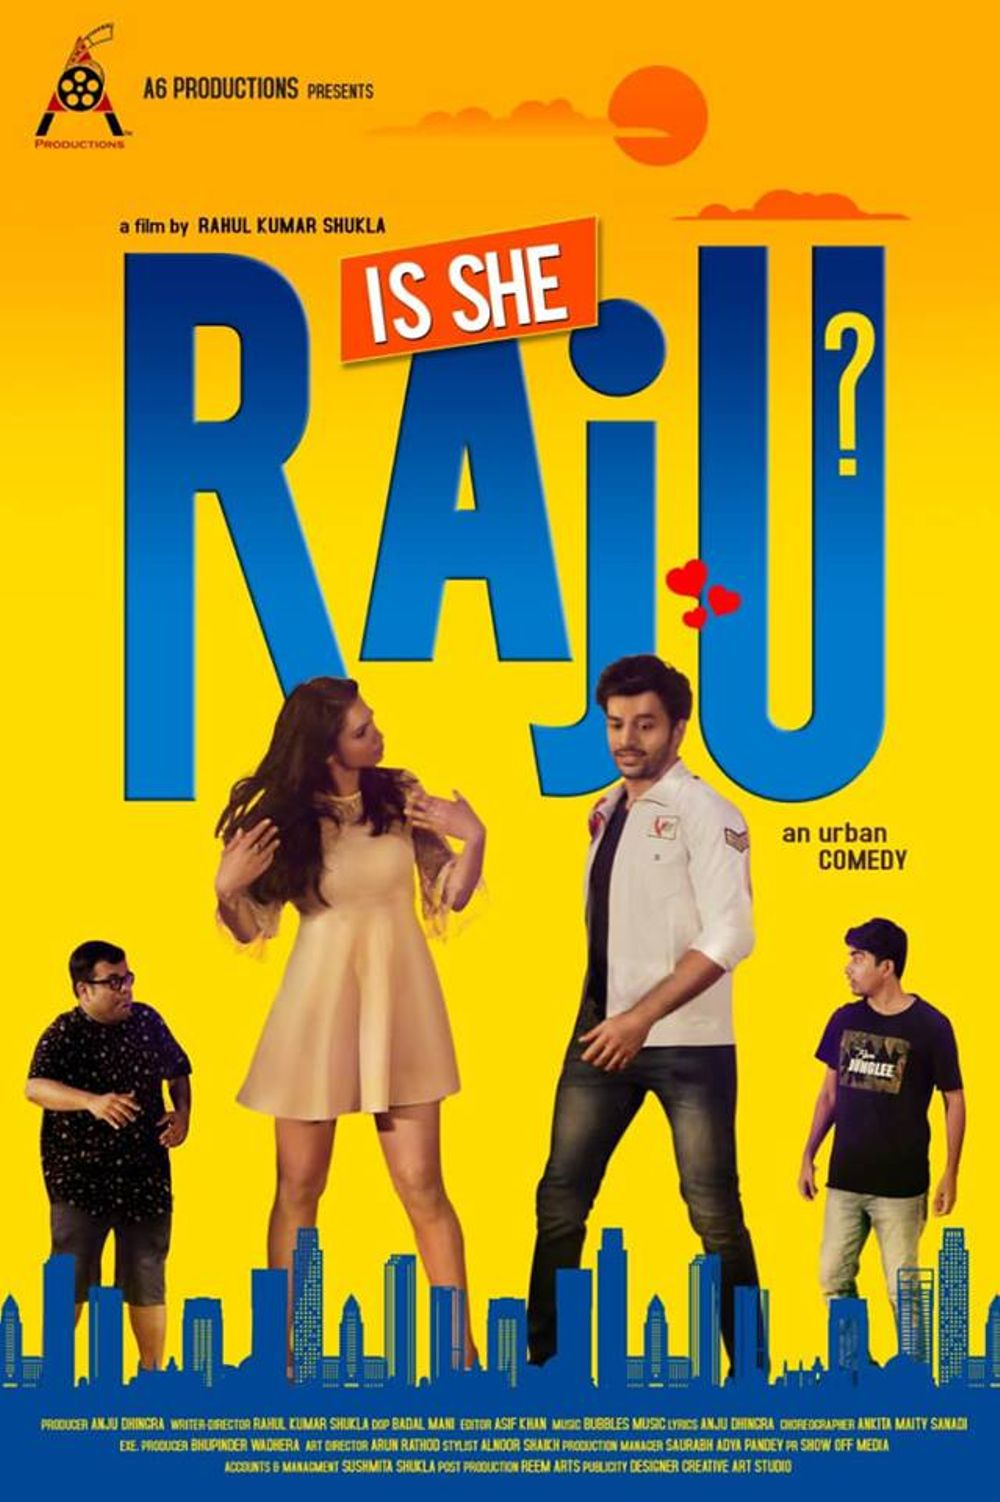 Is She Raju? Movie Review